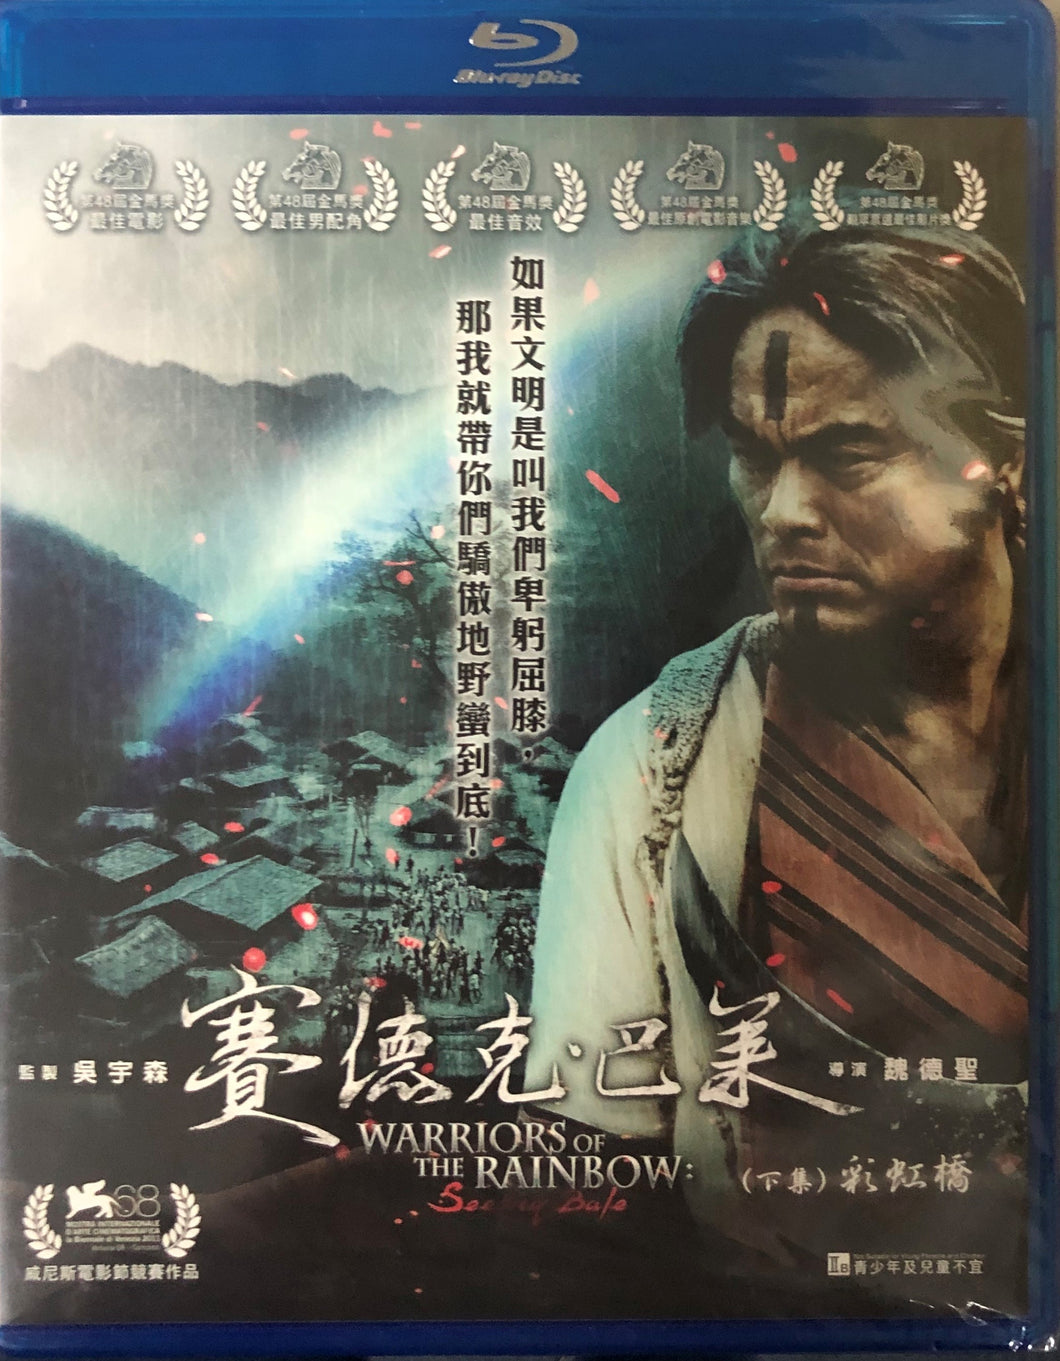 Warriors of the Rainbow Seediq Bale Part II 賽德克巴萊 下集彩虹橋 2011 (BLU-RAY) with English Sub (Region A)